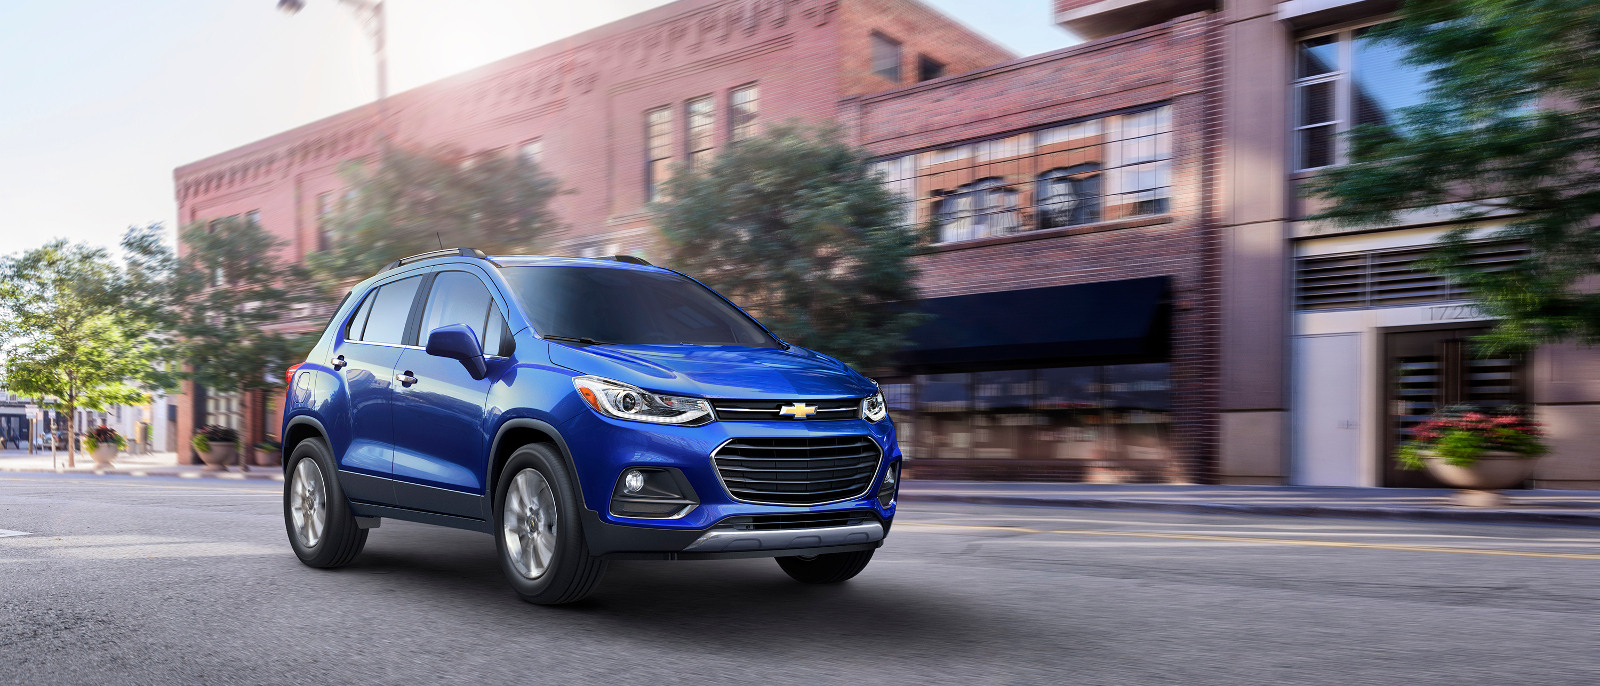 The 2017 Chevrolet Trax Updates For The New Model Year